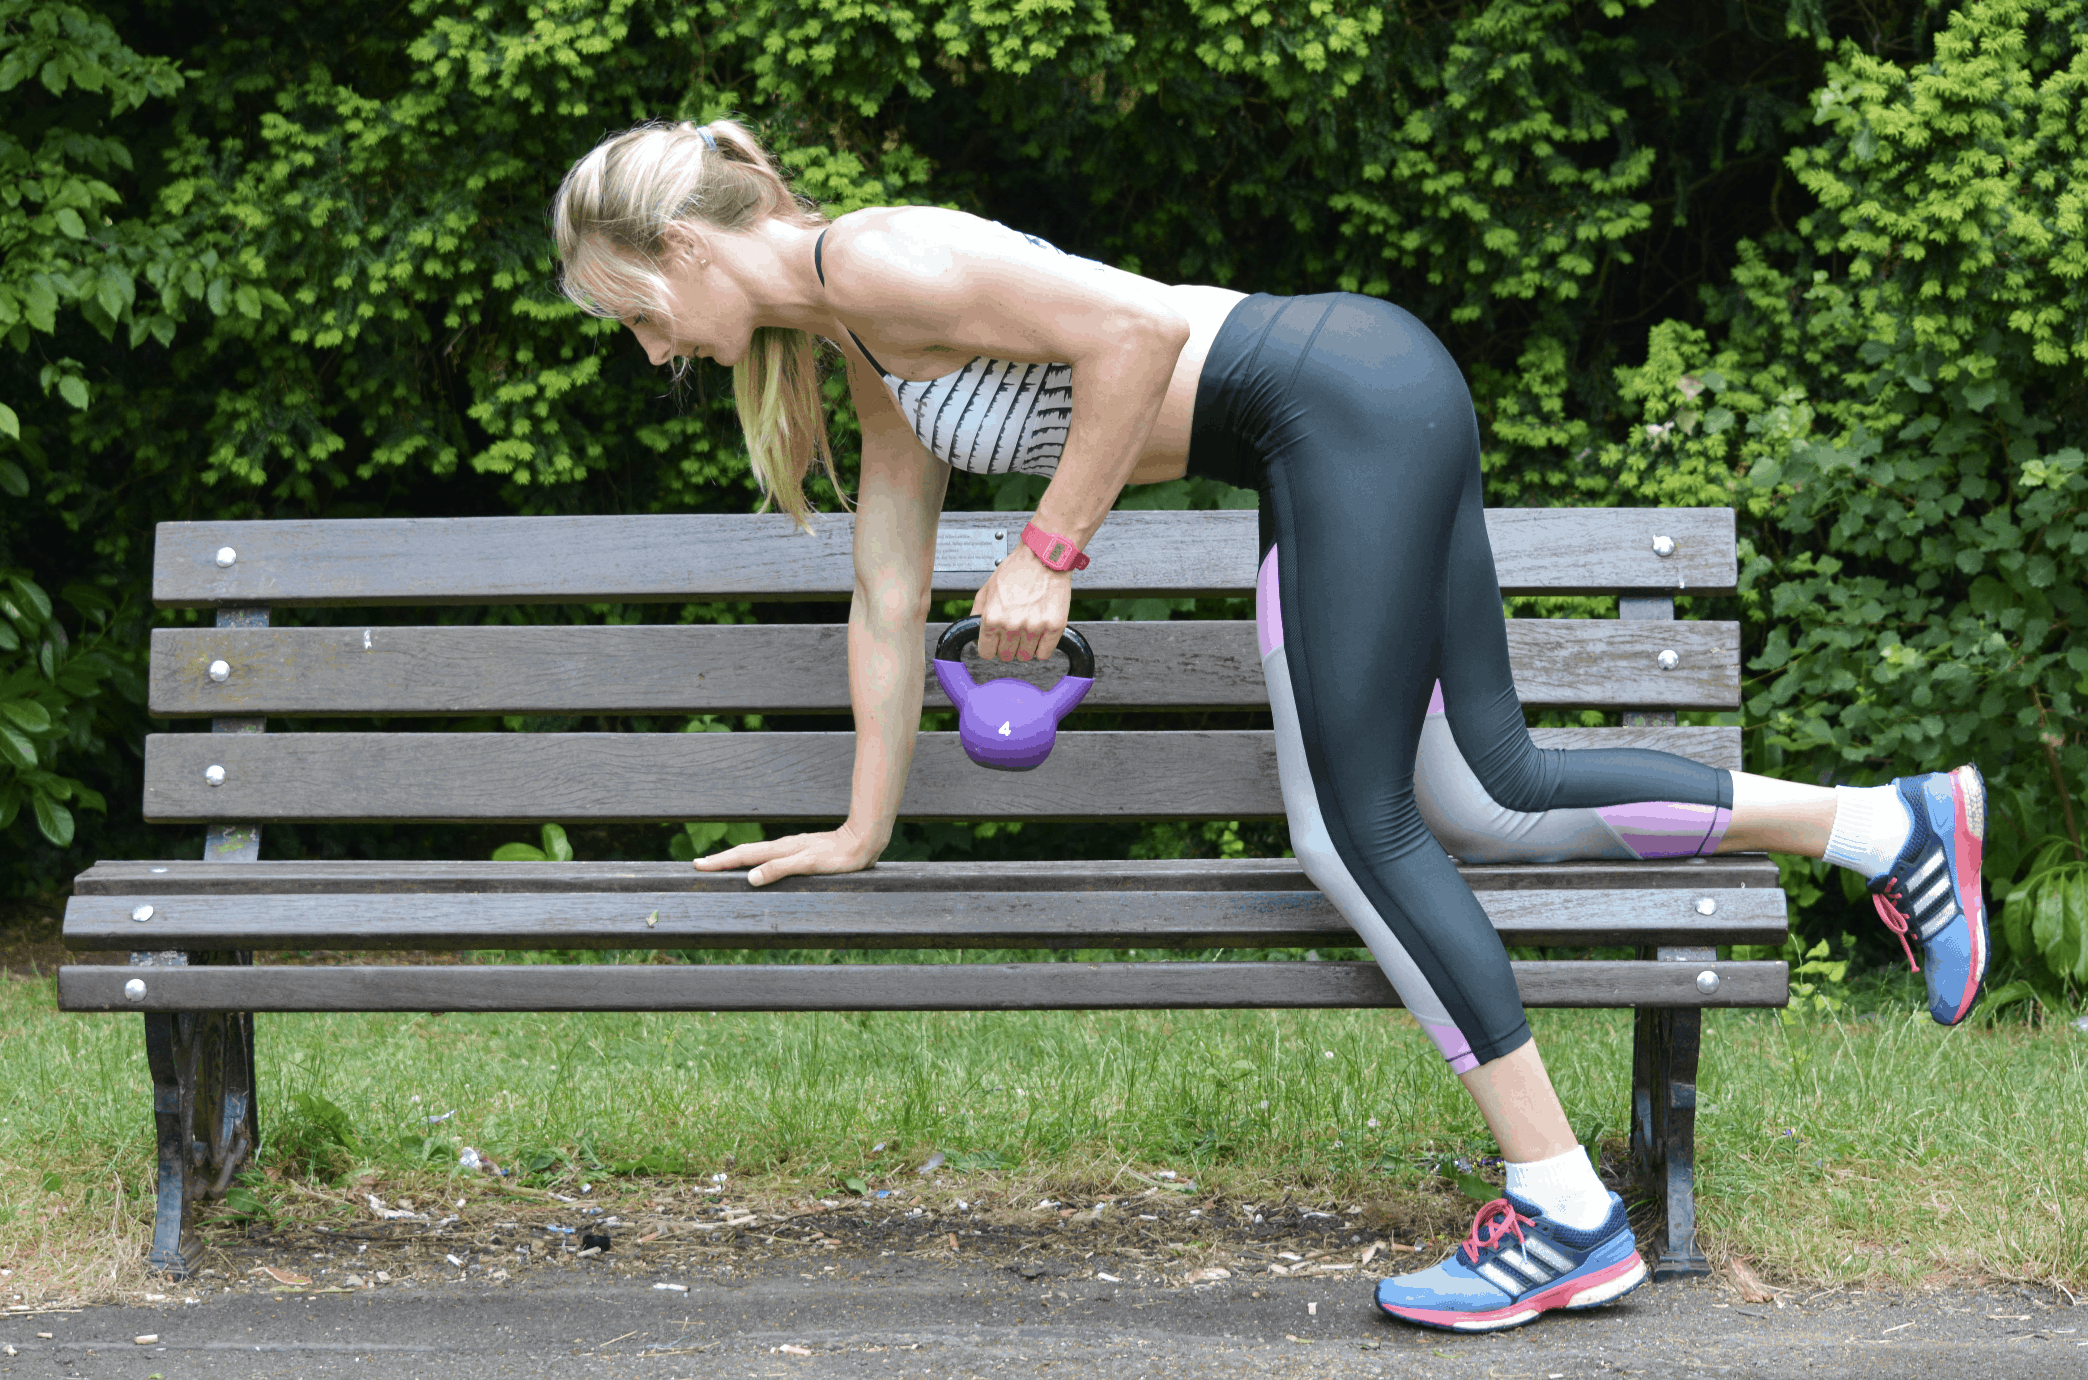 a girl is using a park bench to perform a single-arm kettlebell row.